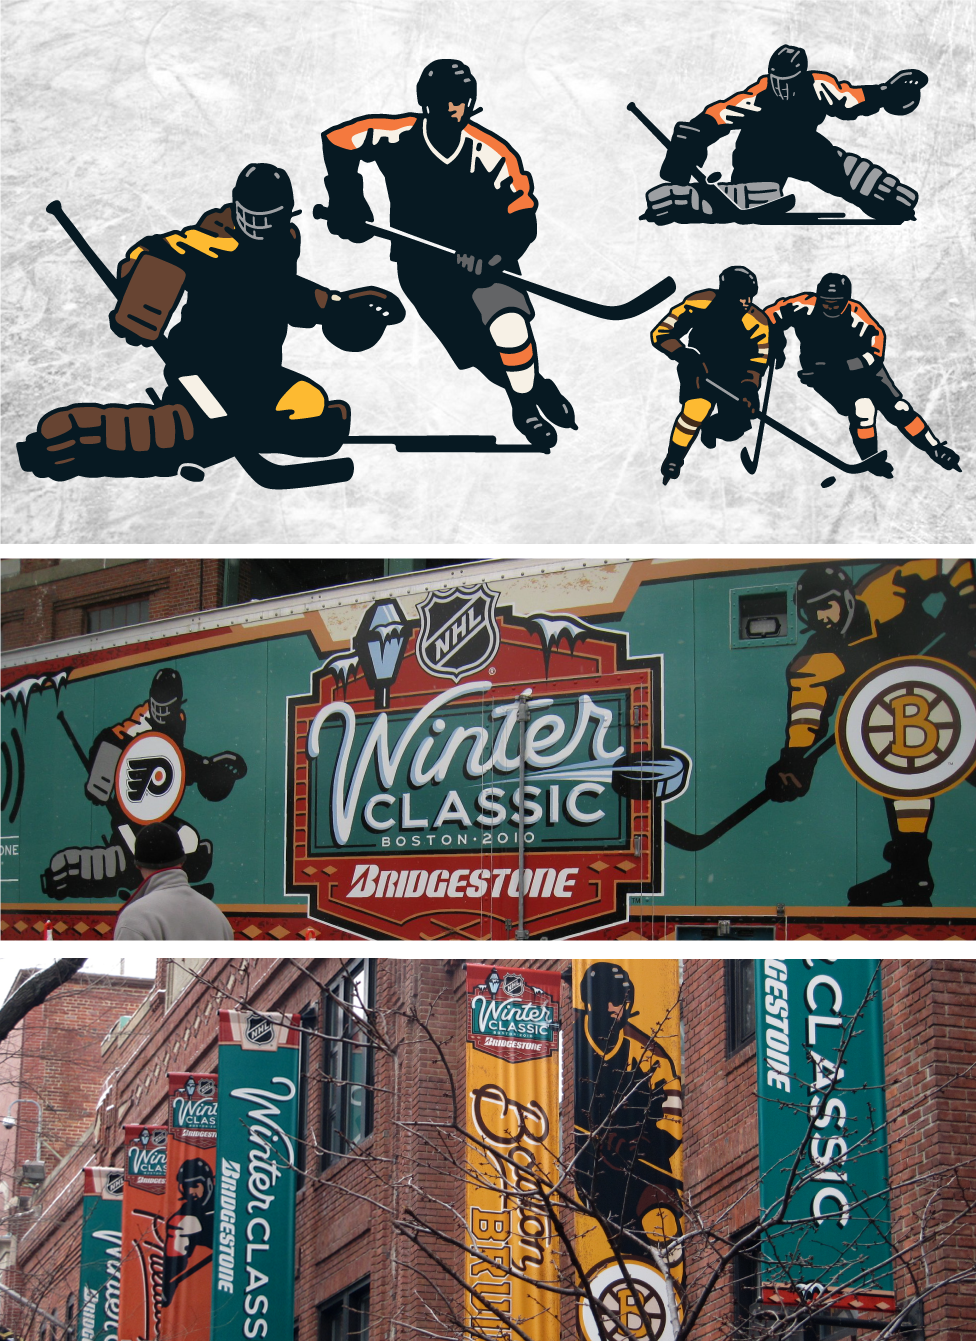 Vintage Player Art at the 2010 Winter Classic in Boston.